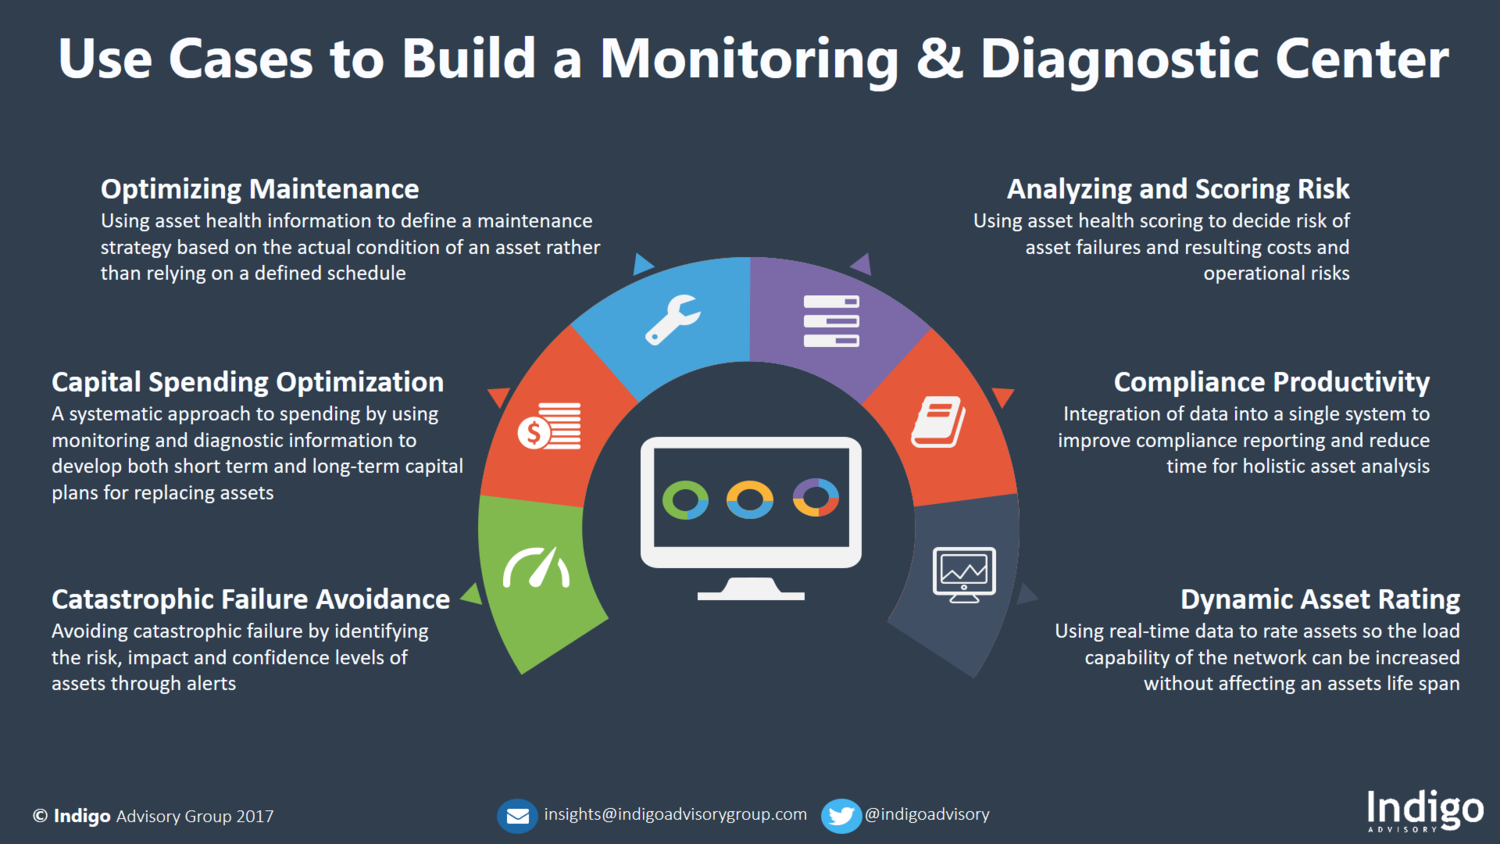 The Utility Business Case for Asset Monitoring and Diagnostic Centers